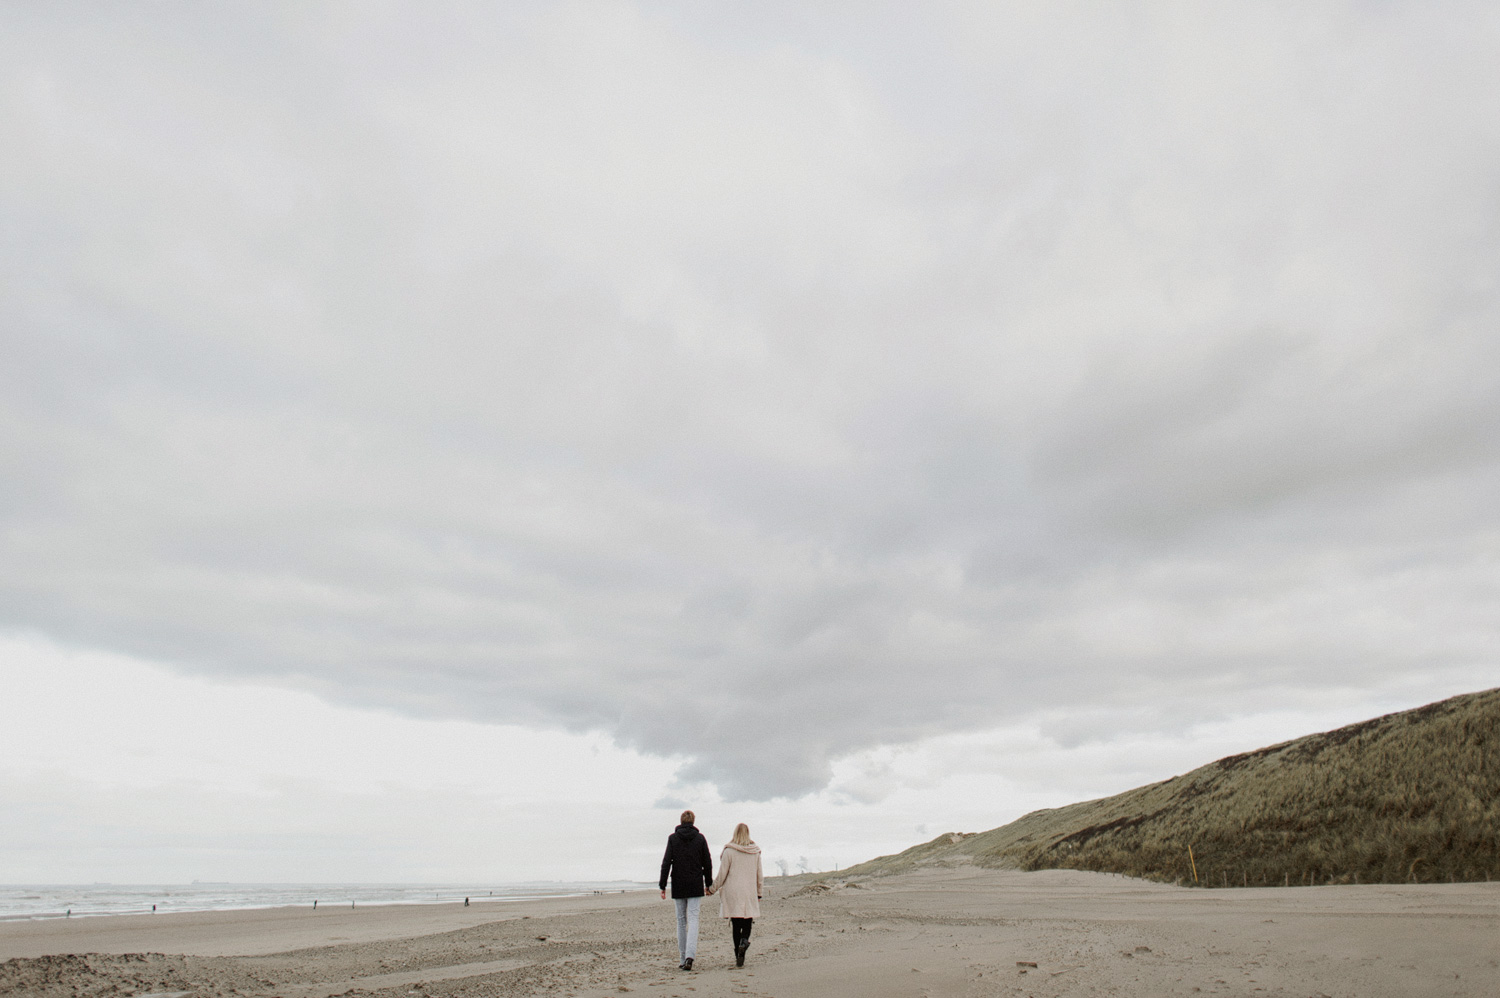 Couple walking on the beach of Bloemendaal